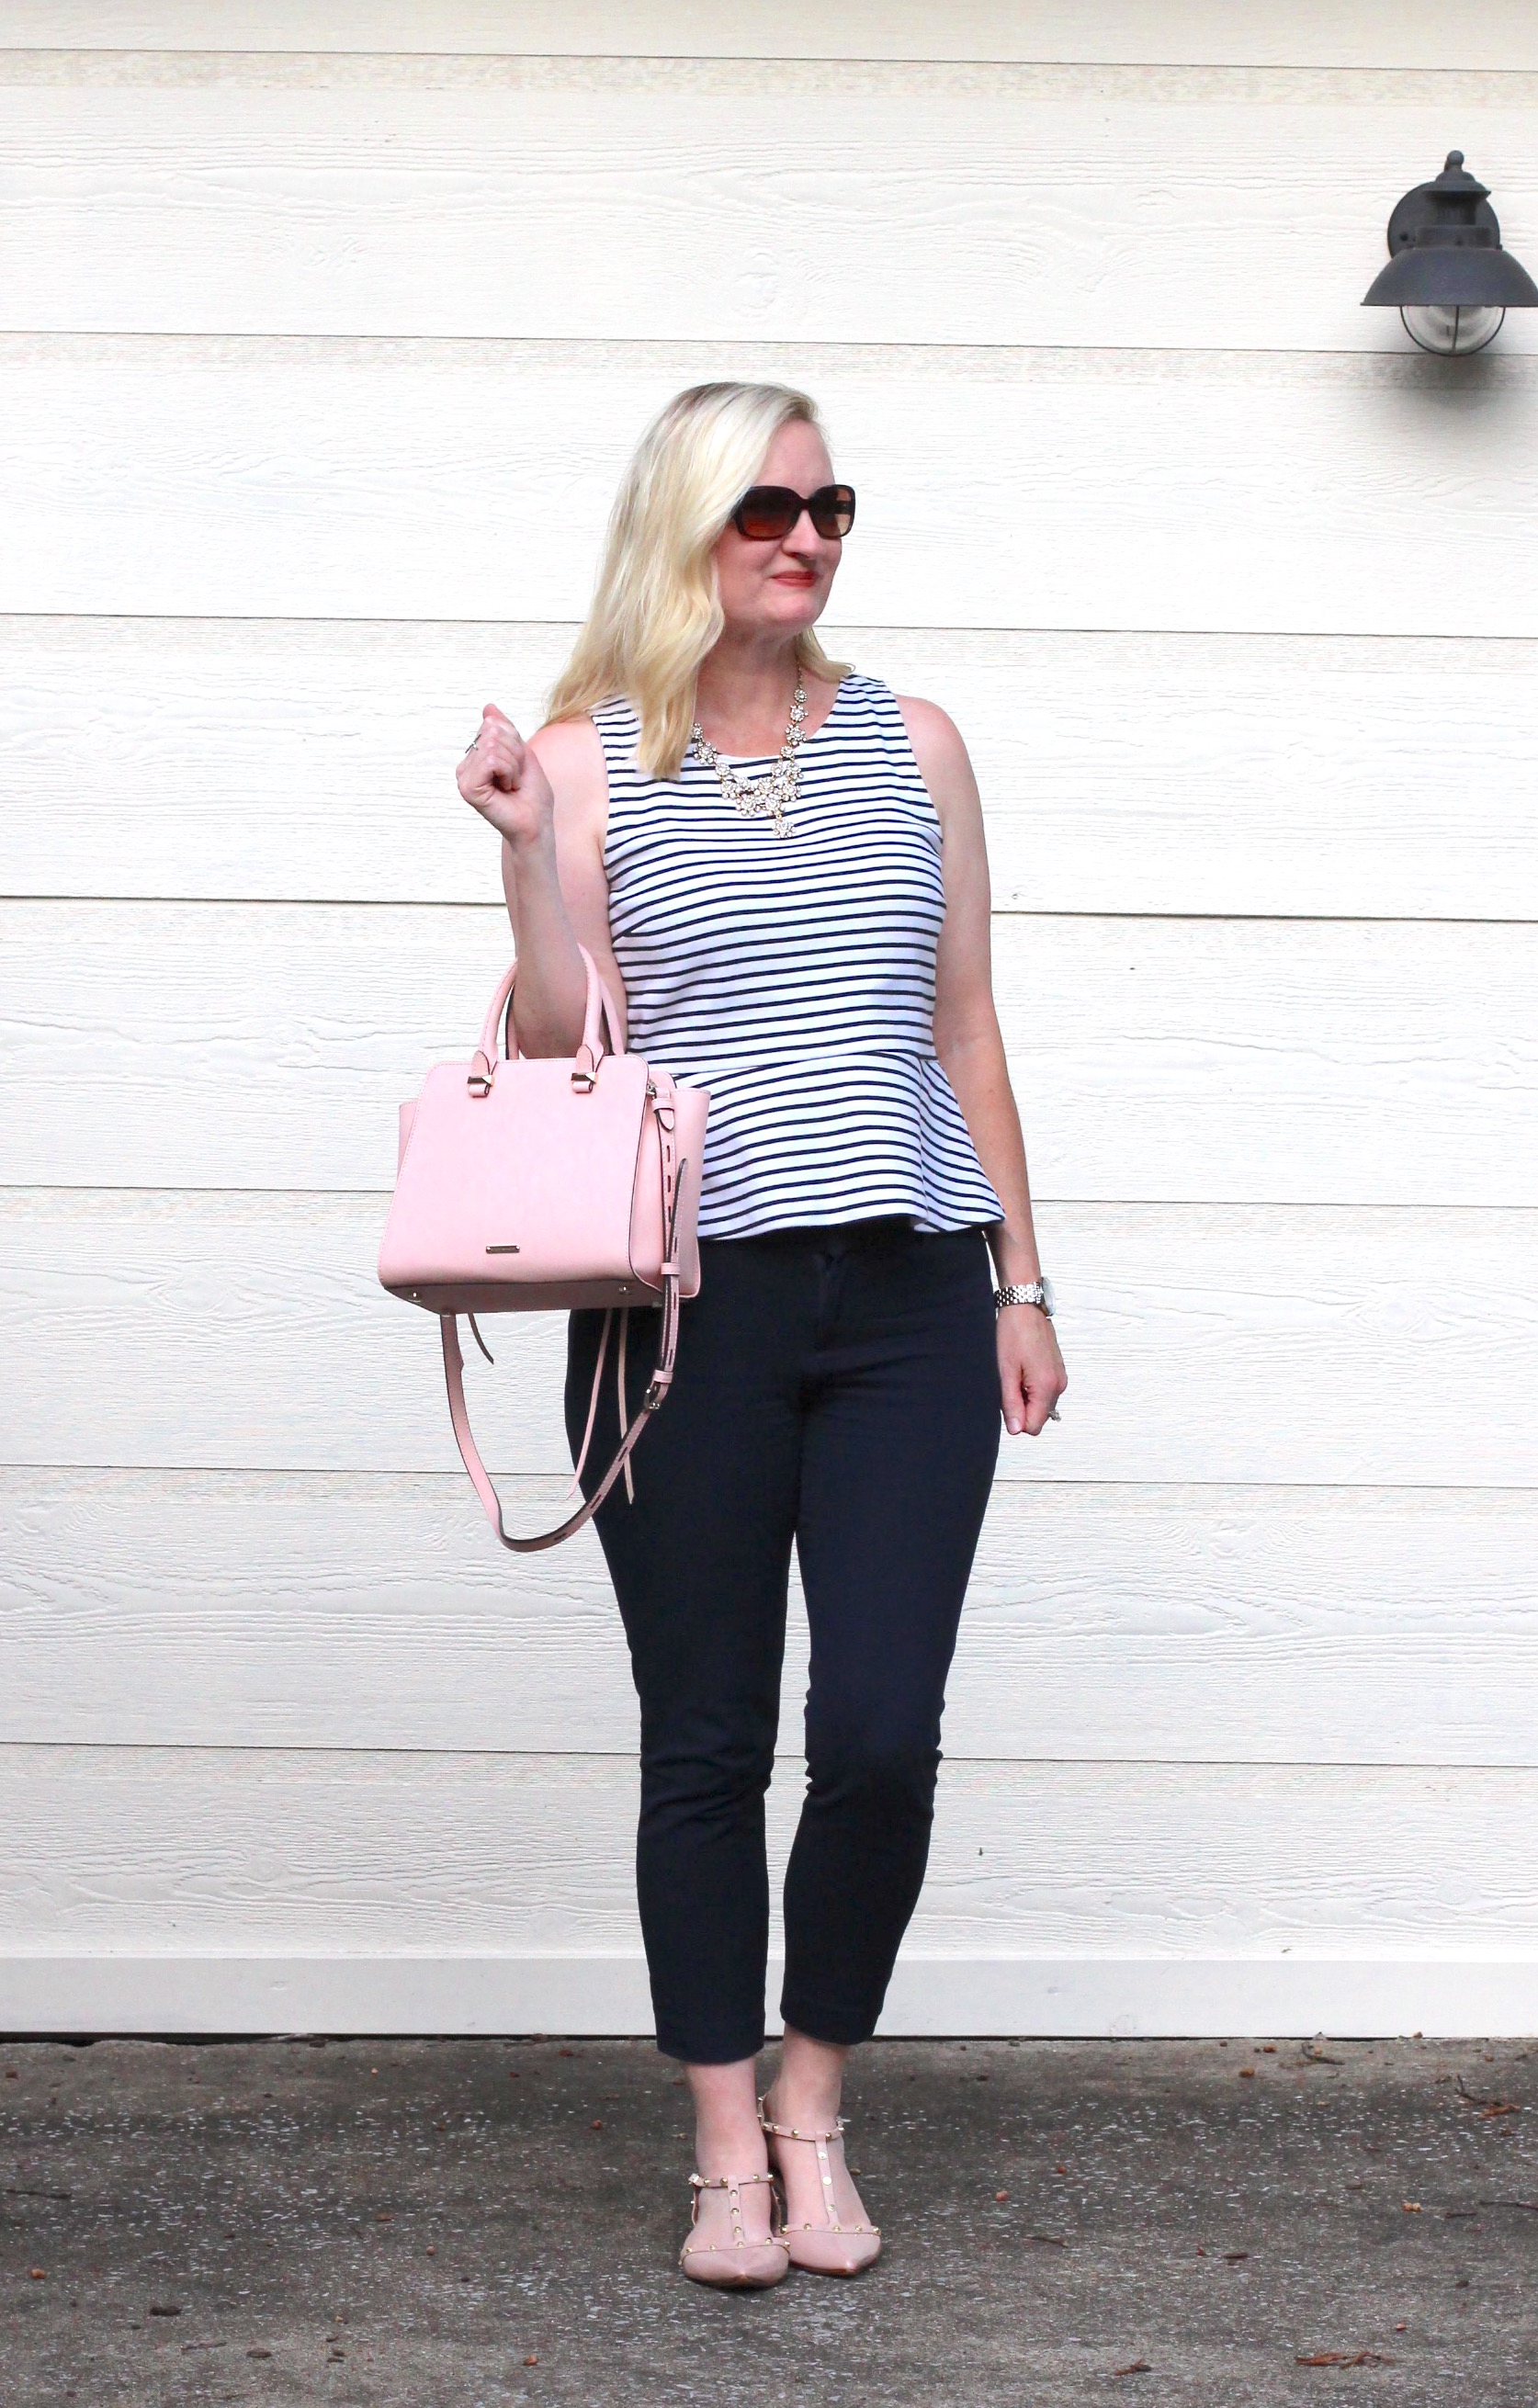 What I Wore To Work (Trendy Wednesday Link-up #81)